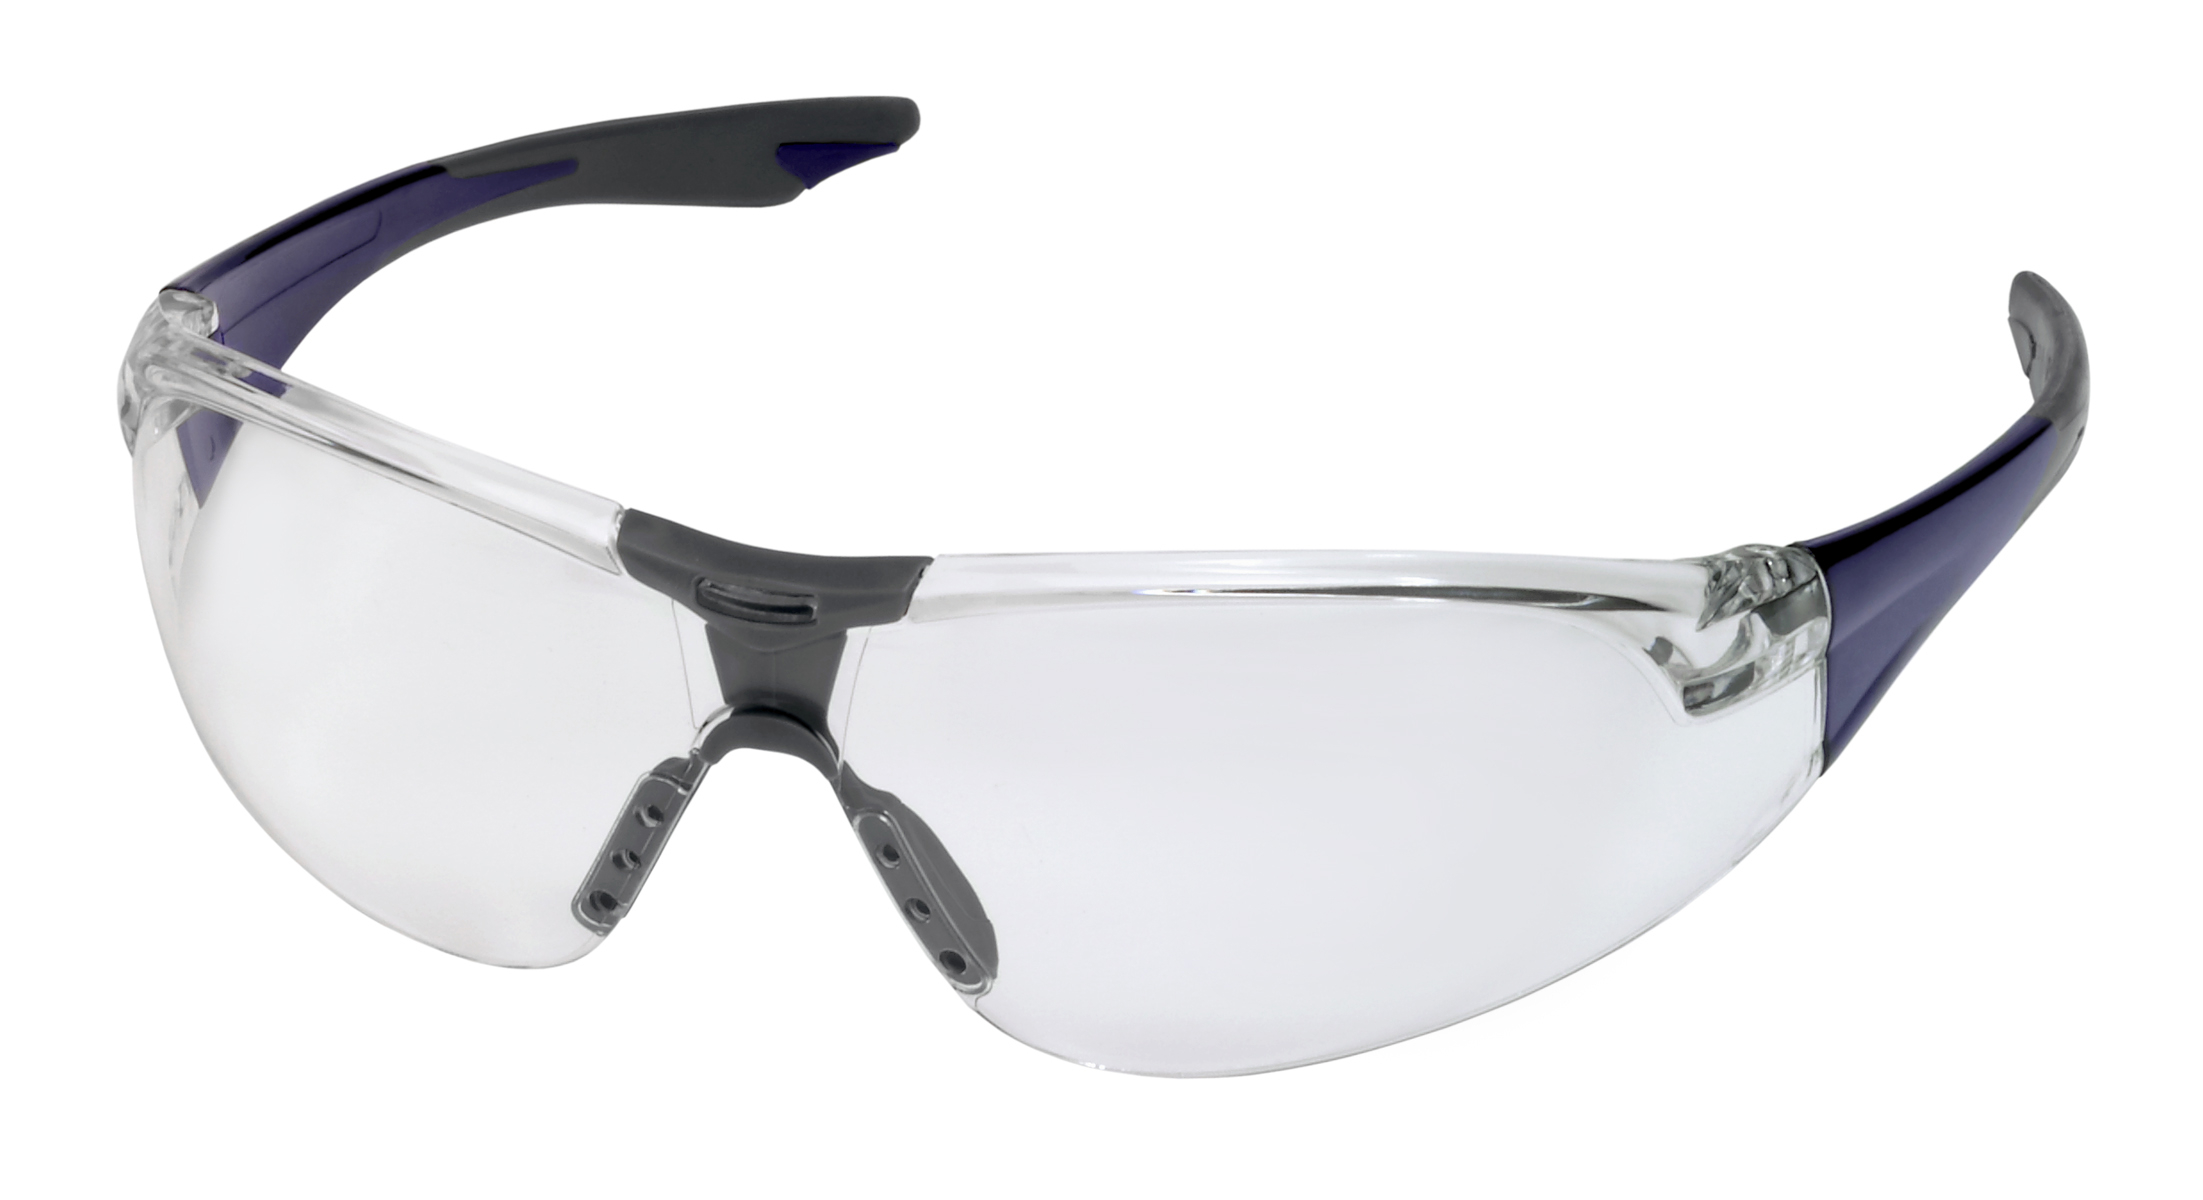 High Resolution Goggles Png Icon image #22864